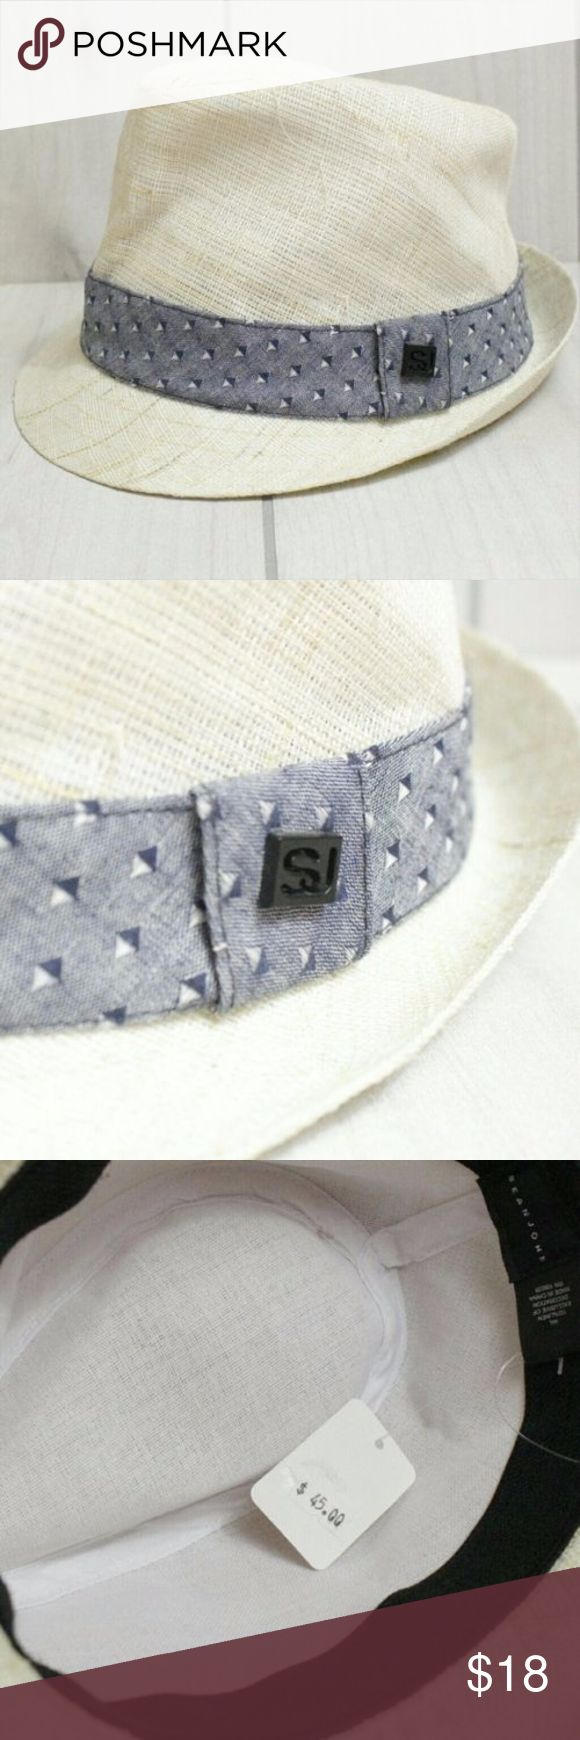 """Sean John Fedora Summer Hat Banded Mens Beach Hat Men's Casual Summer Fedora Hat Size M/L Please see measurements. This is new with tag.   100% Linen   Size M/L suitable for head circumference 22-22.75"""" Sean John Accessories Hats"""